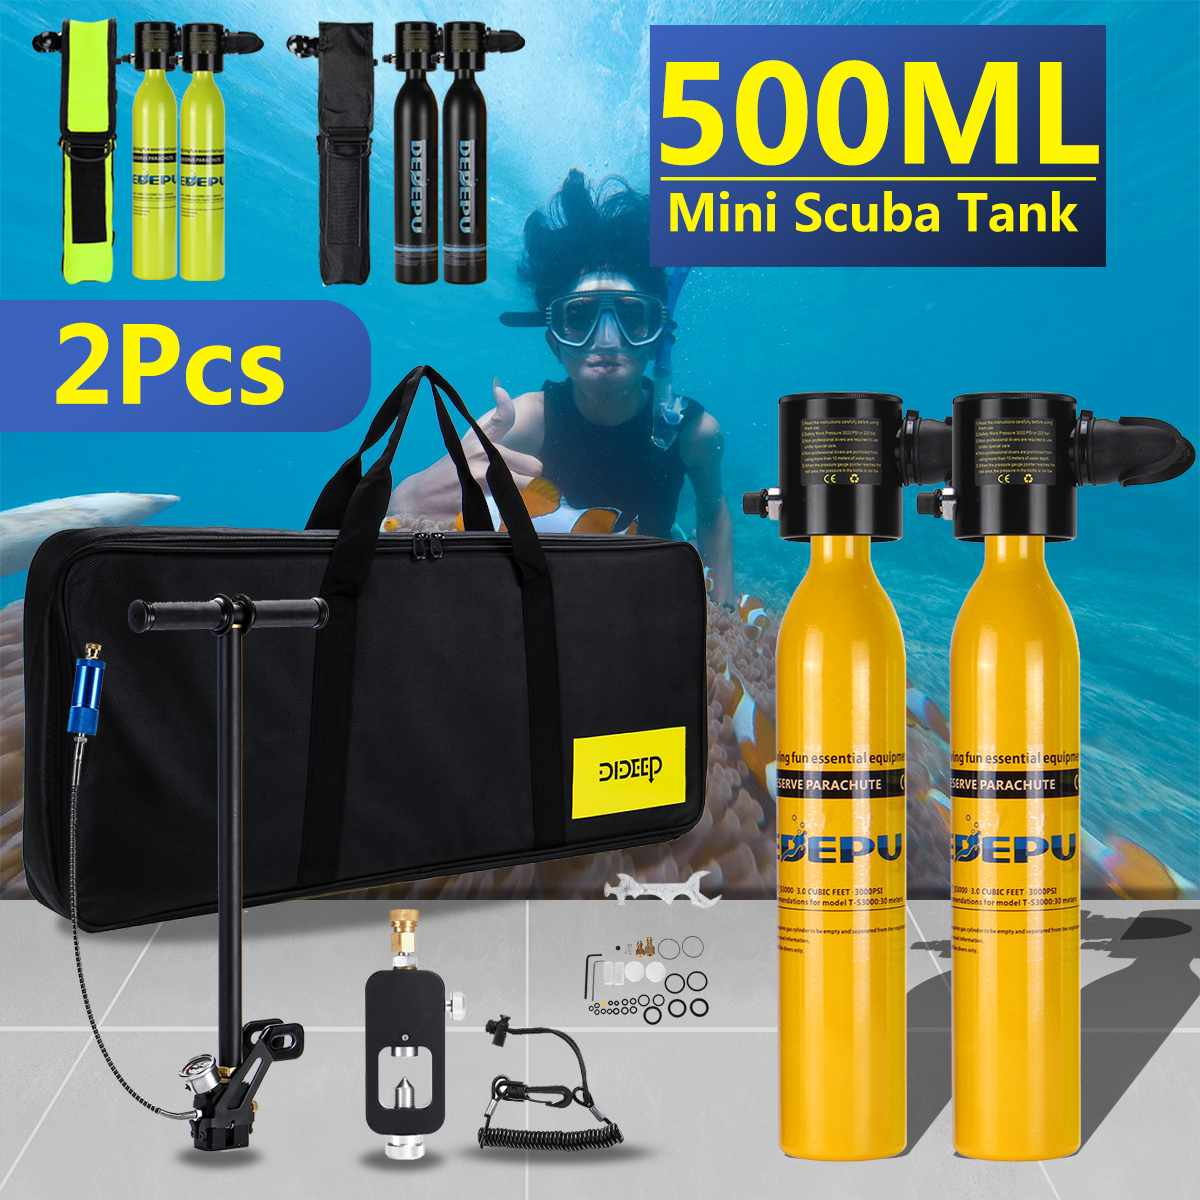 500ml Diving System Mini Scuba Cylinder Scuba Oxygen Reserve A.ir Tank Pump Aluminum Box Snorkeling Diving Equipment Set